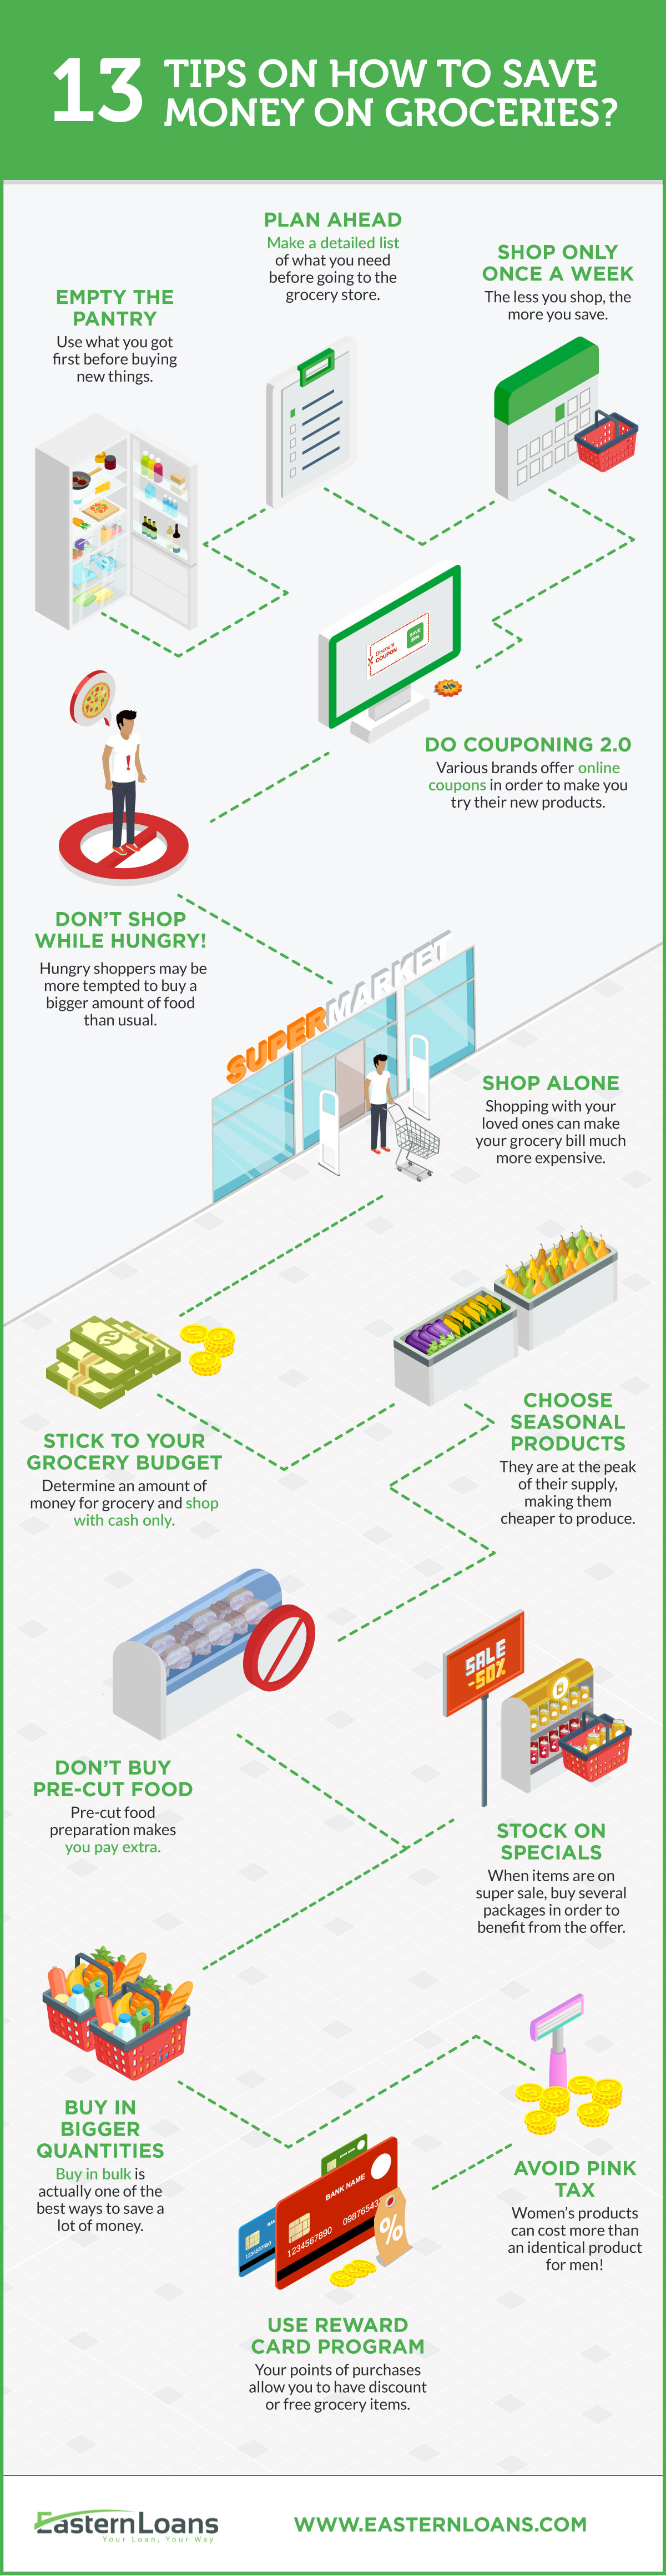 How to save money on groceries?